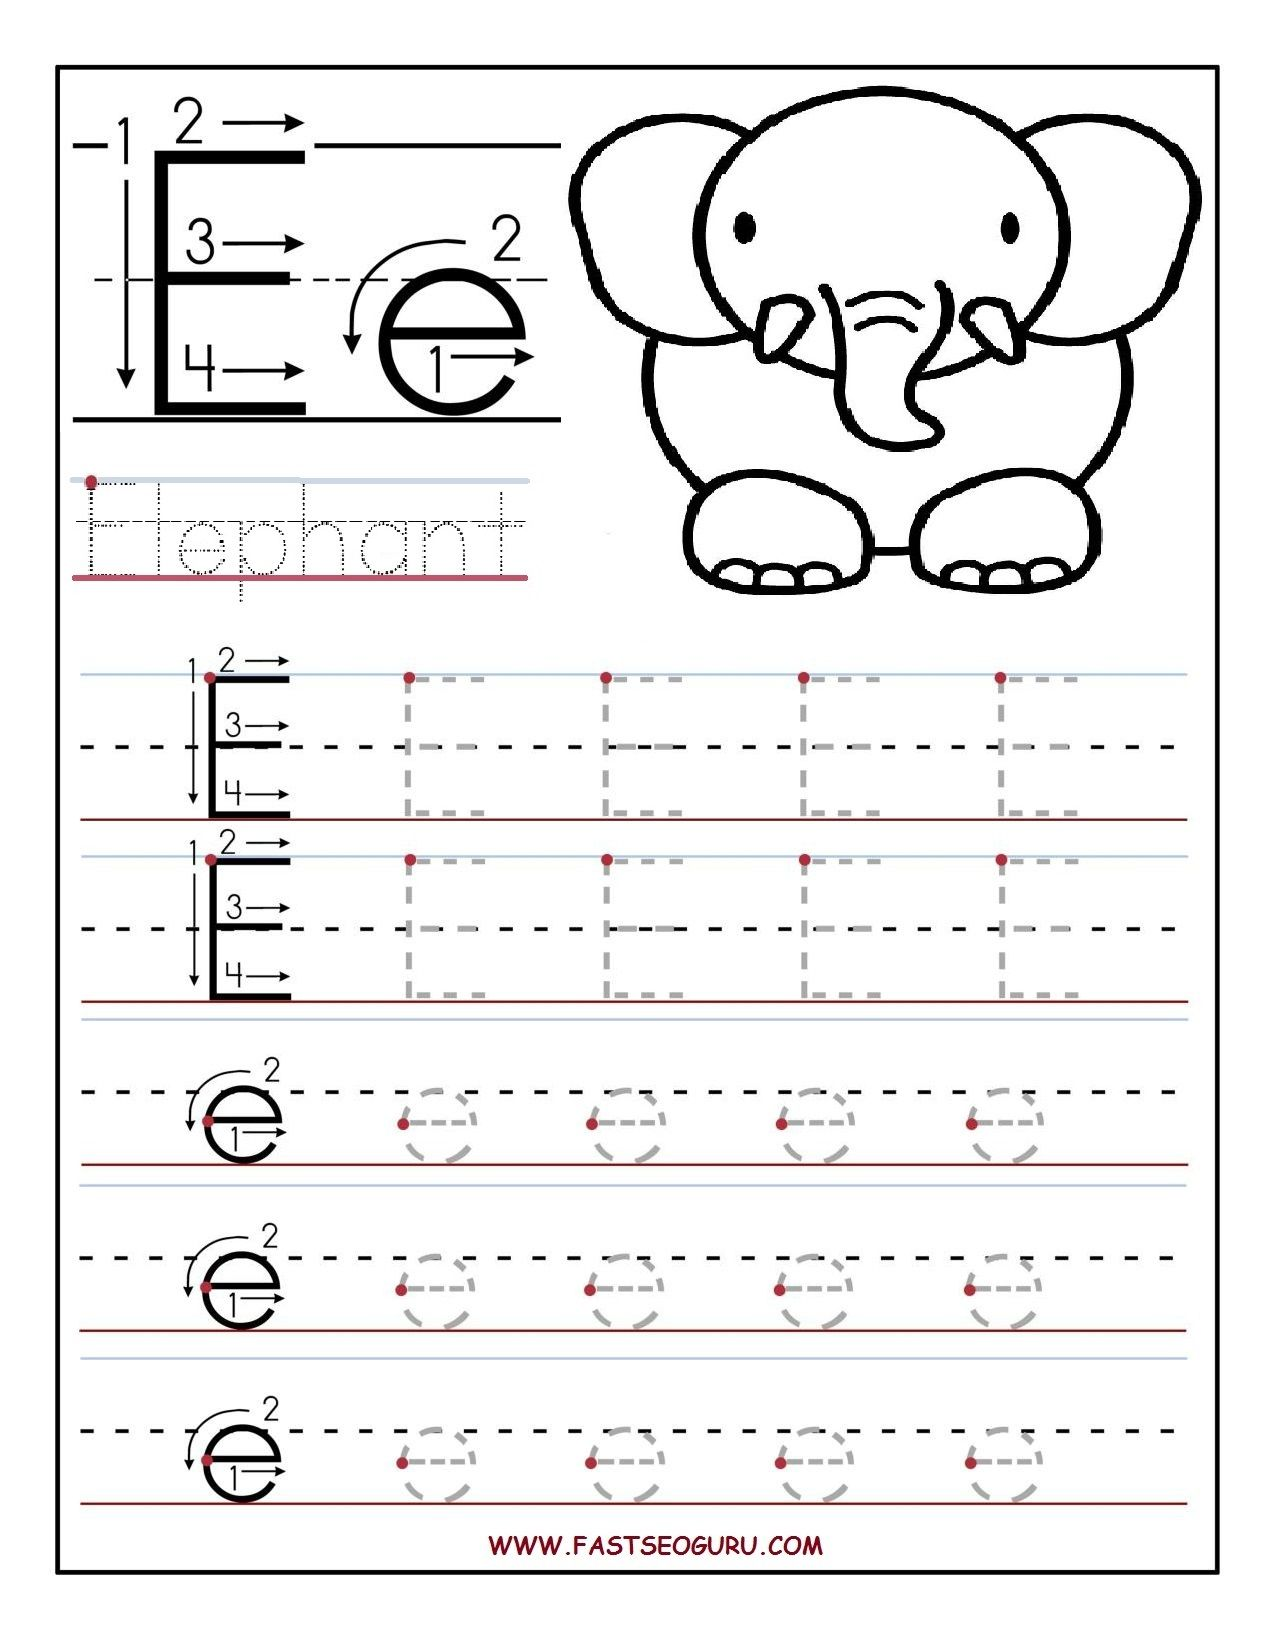 Printable letter E tracing worksheets for preschool | Preschool ...